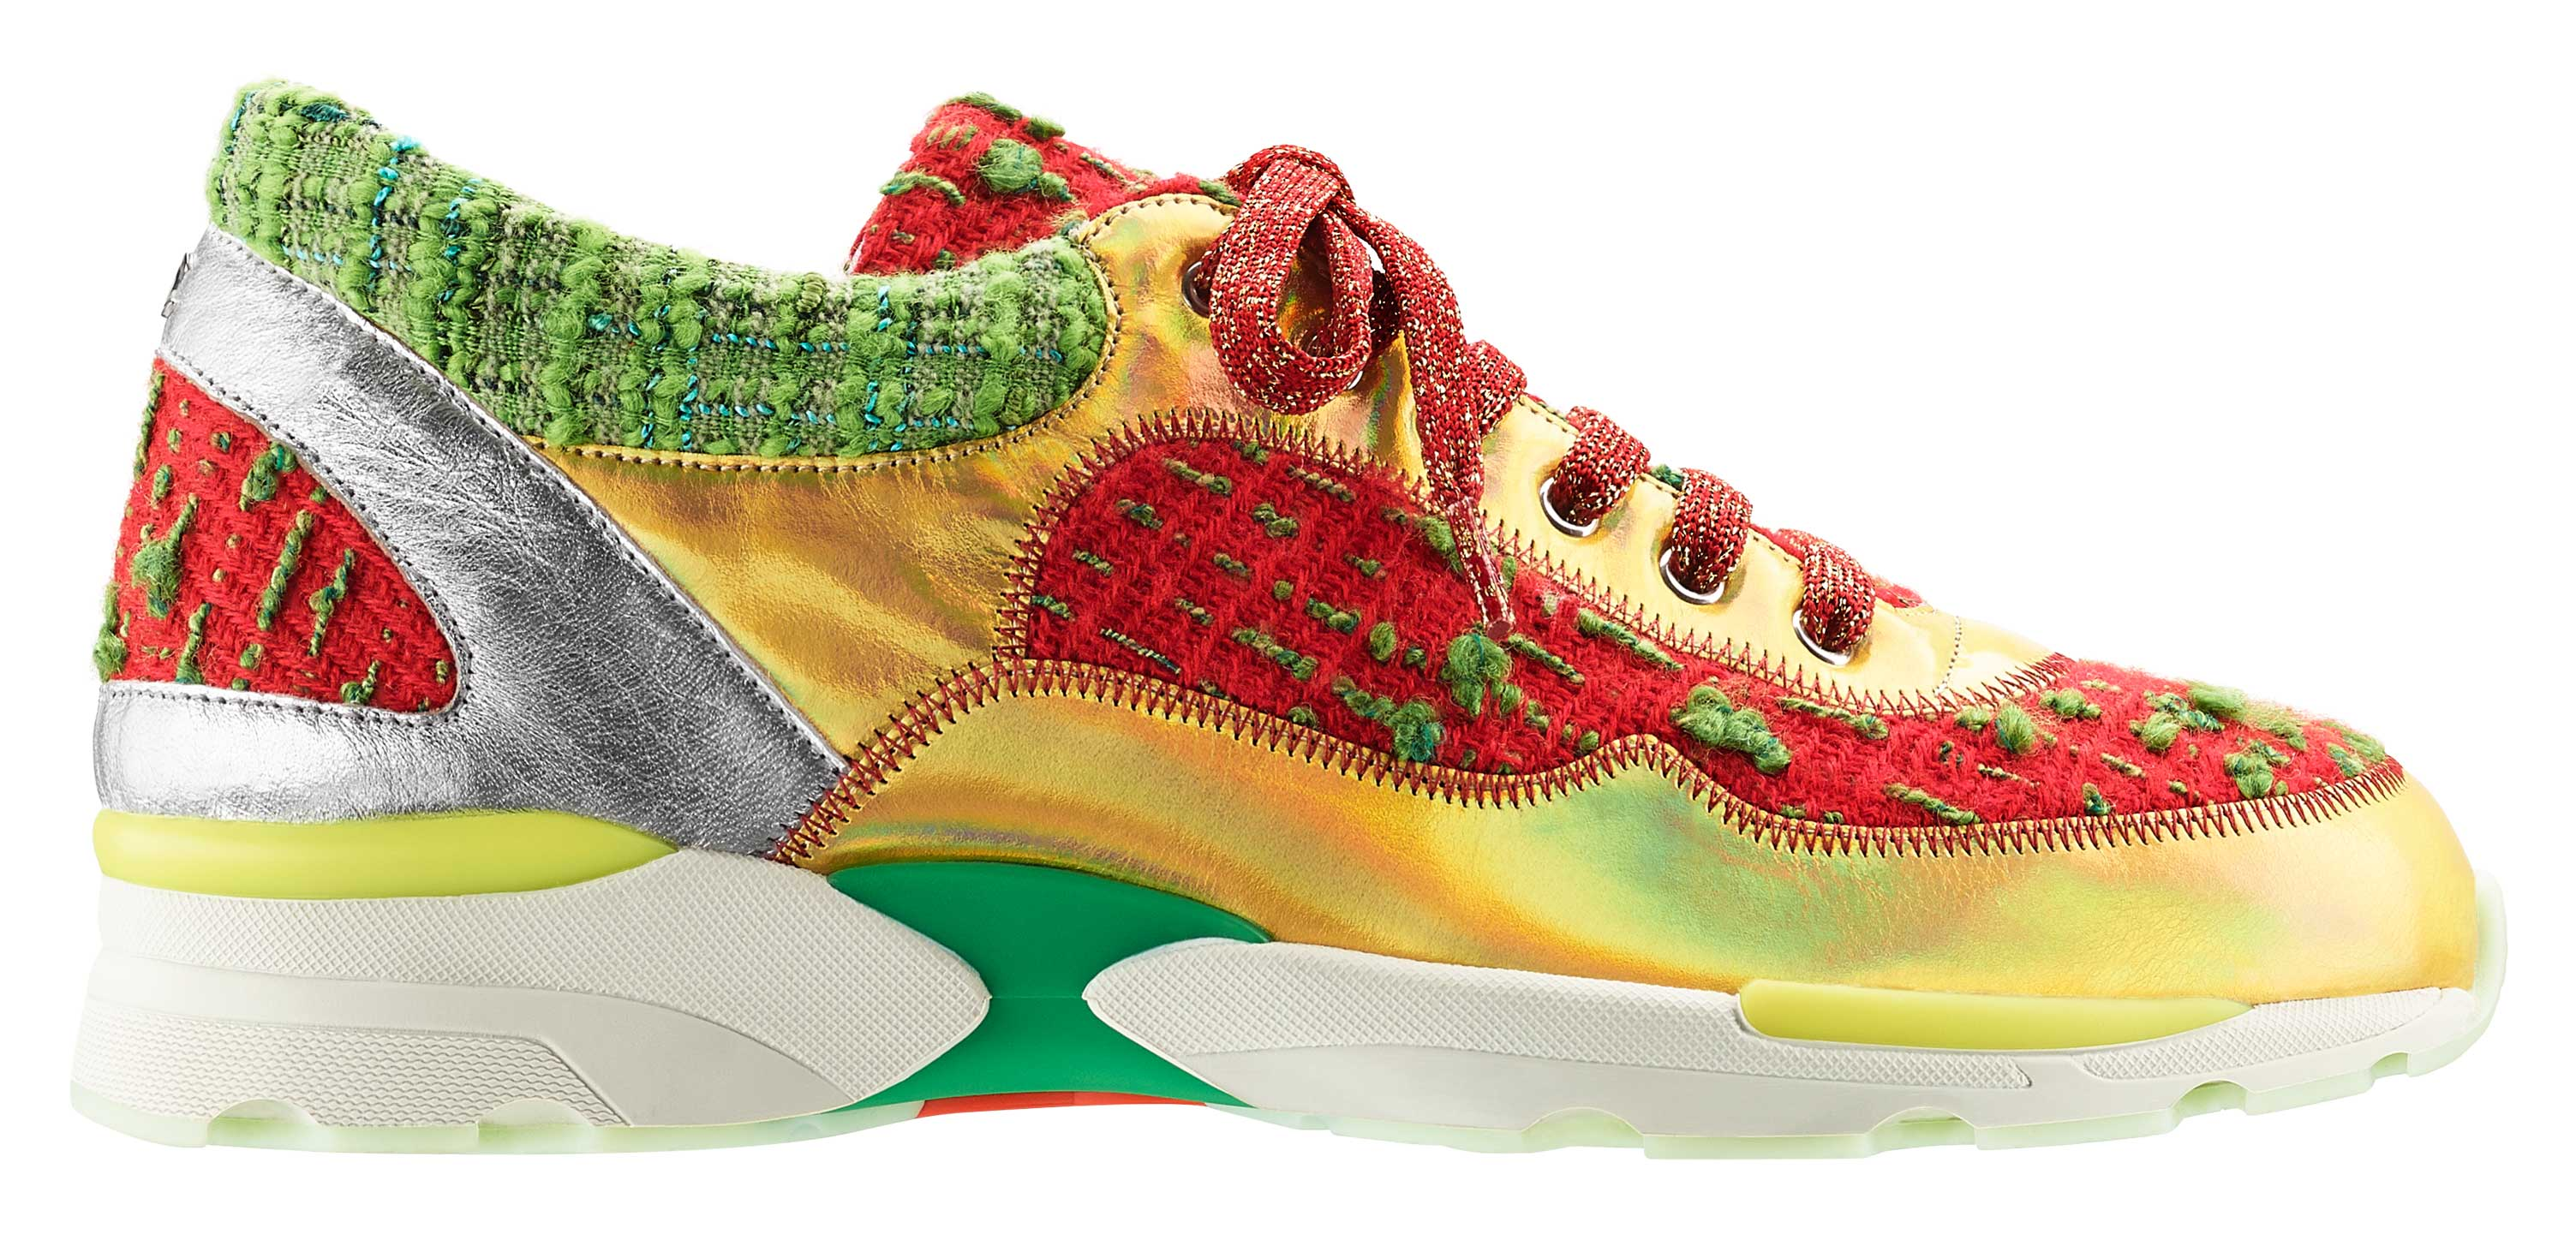 Red-and-green-tweed,-leather-and-rubber-sneaker_Basket-en-tweed-rouge-et-vert,-cuir-et-caoutchouc